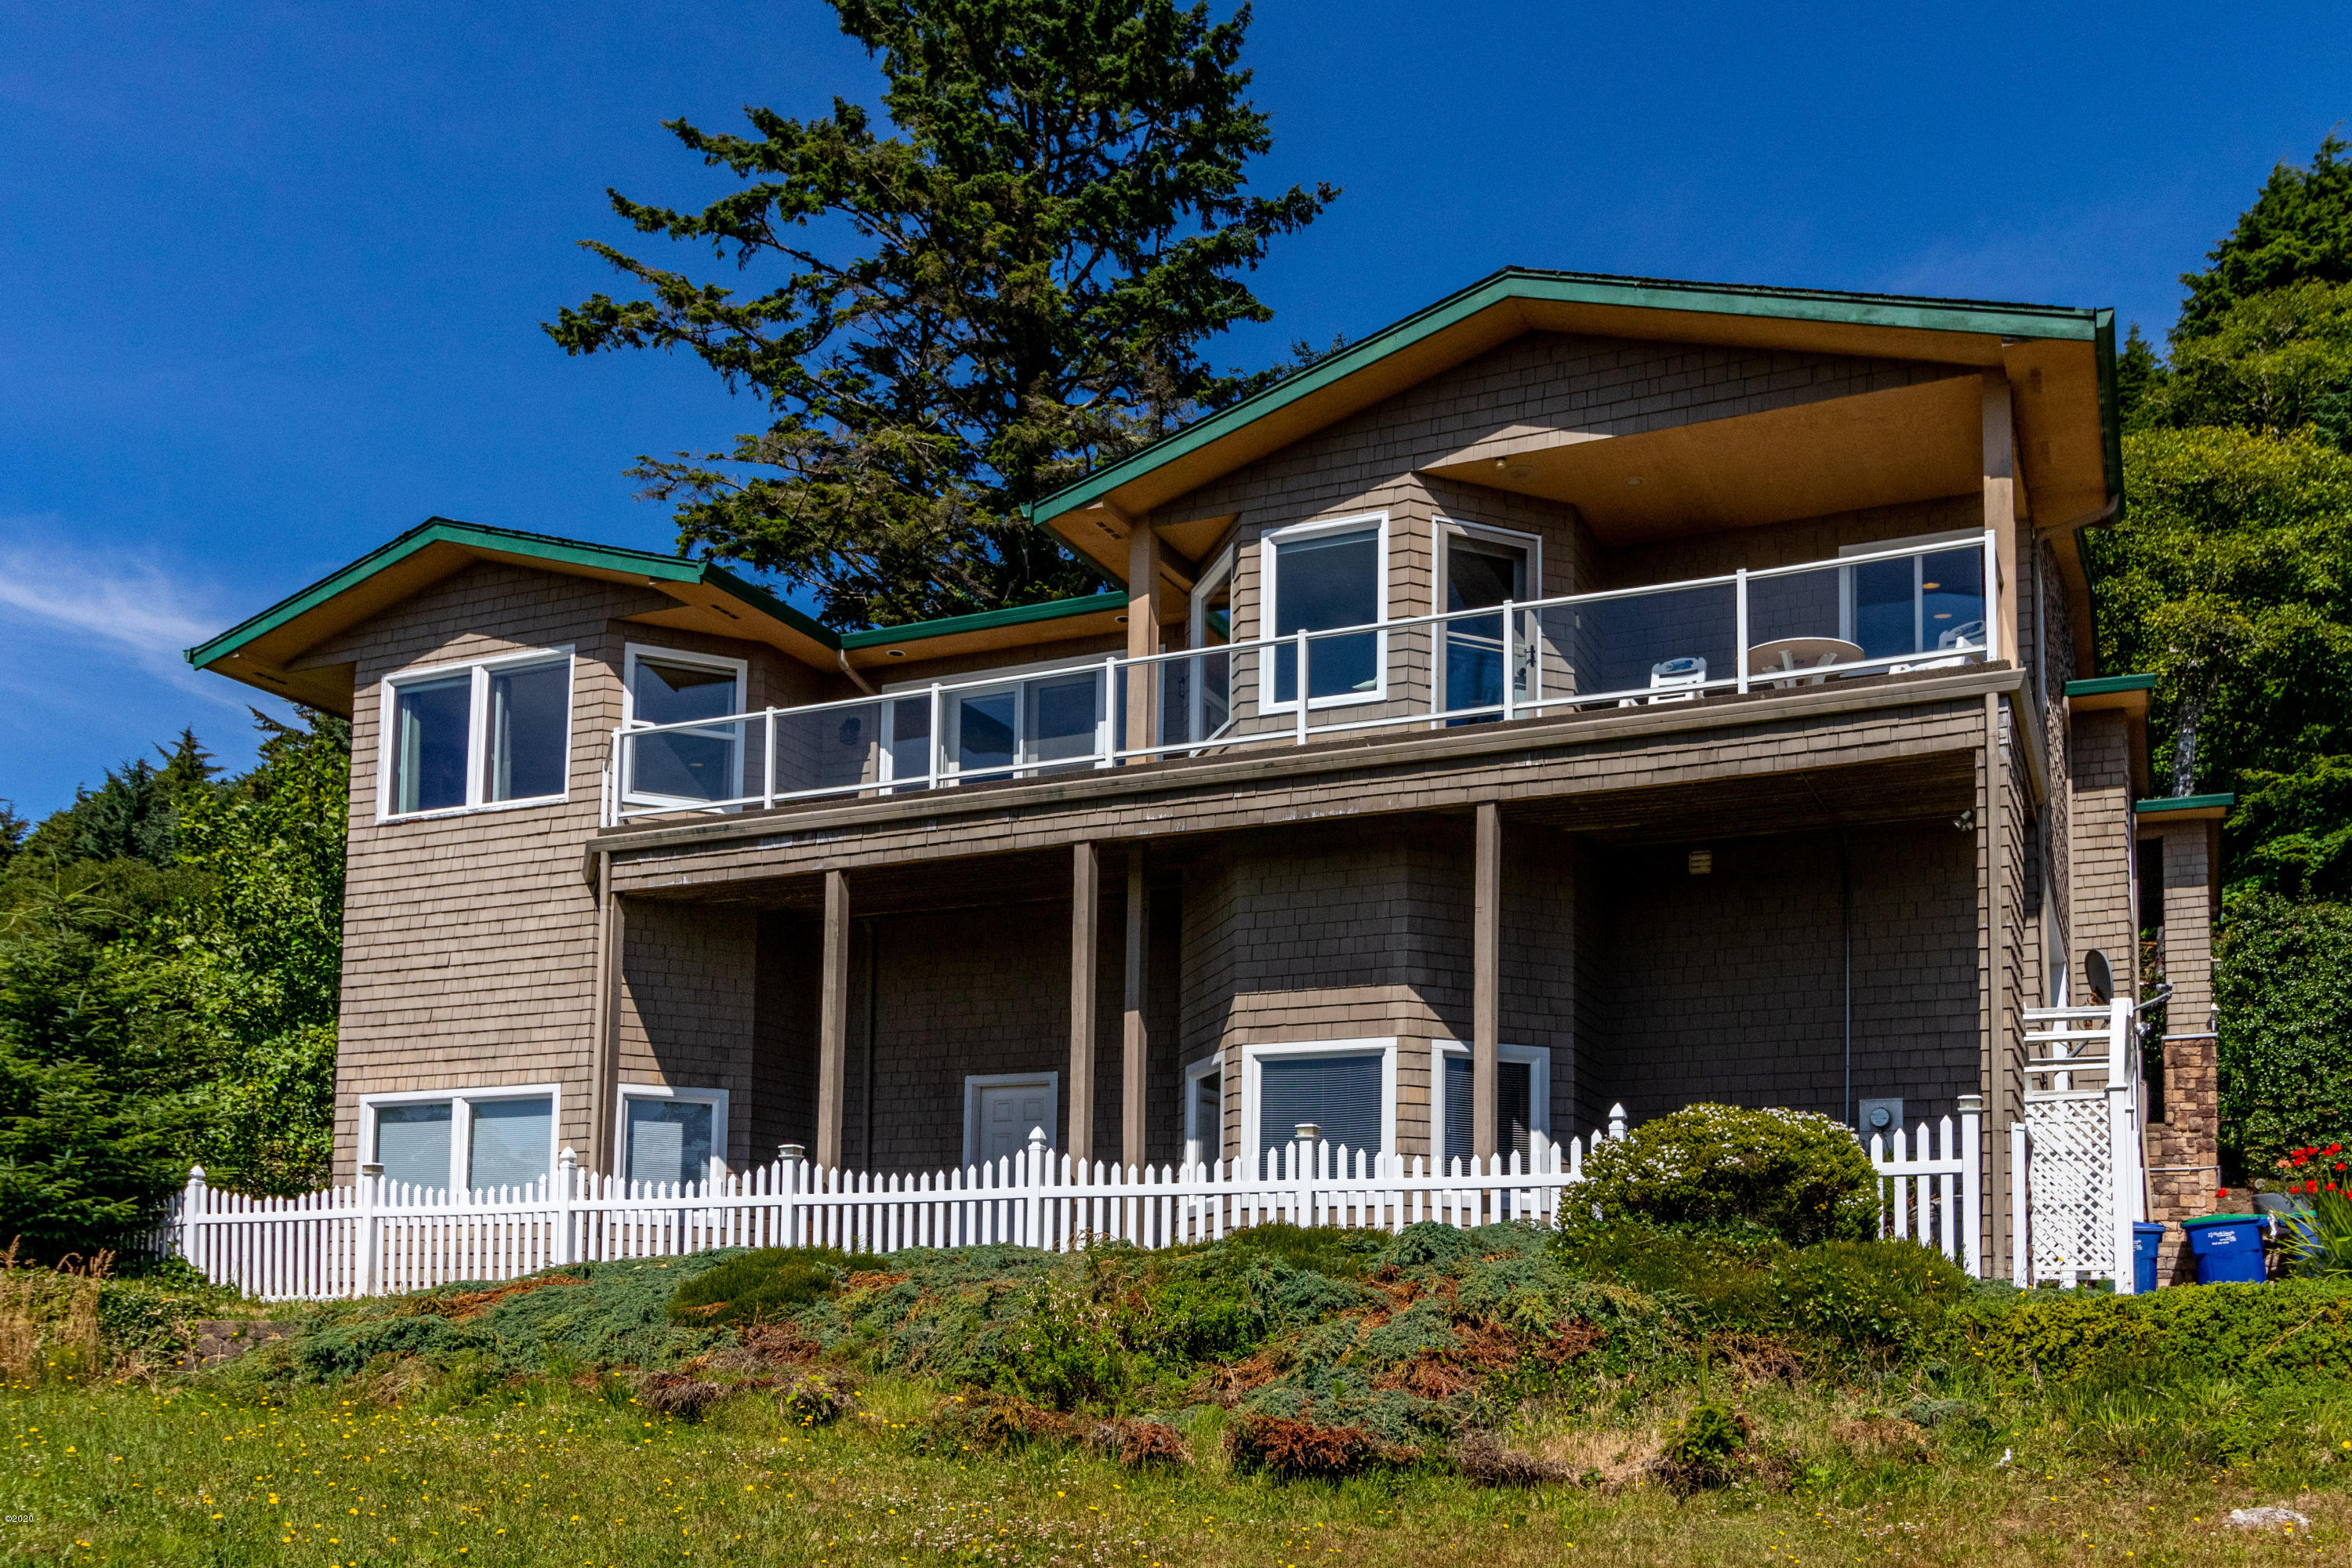 125 Allen St, Depoe Bay, OR 97341 - 125 Allen